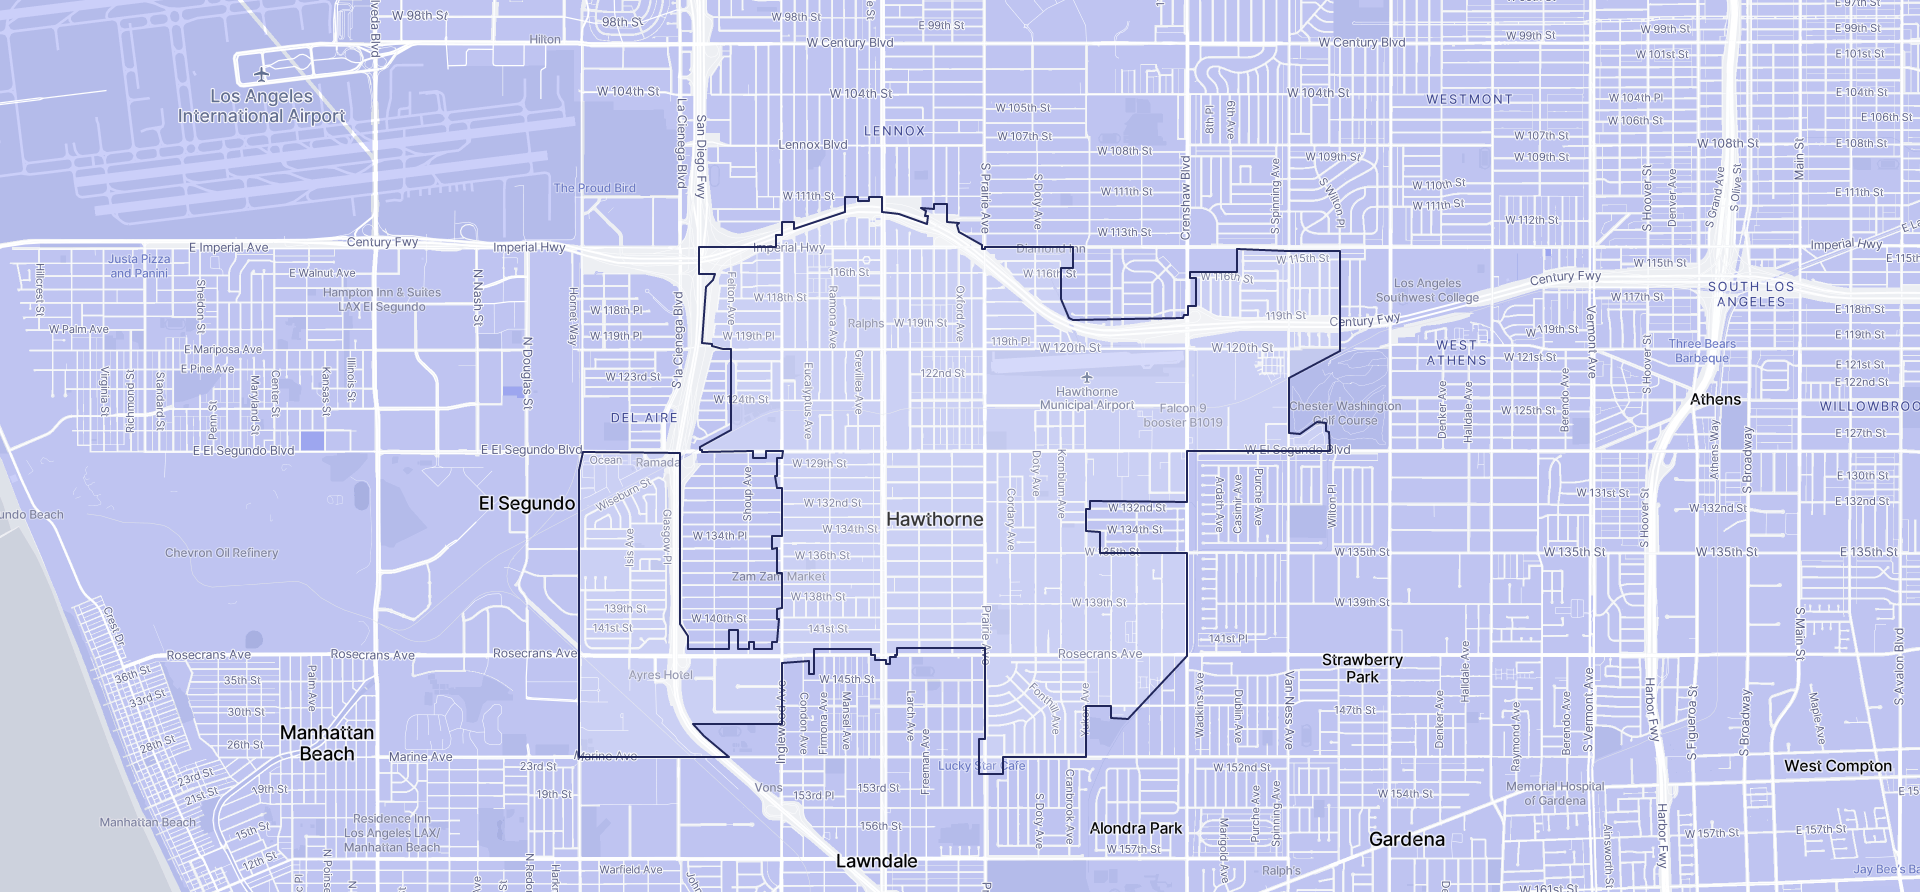 Image of Hawthorne boundaries on a map.